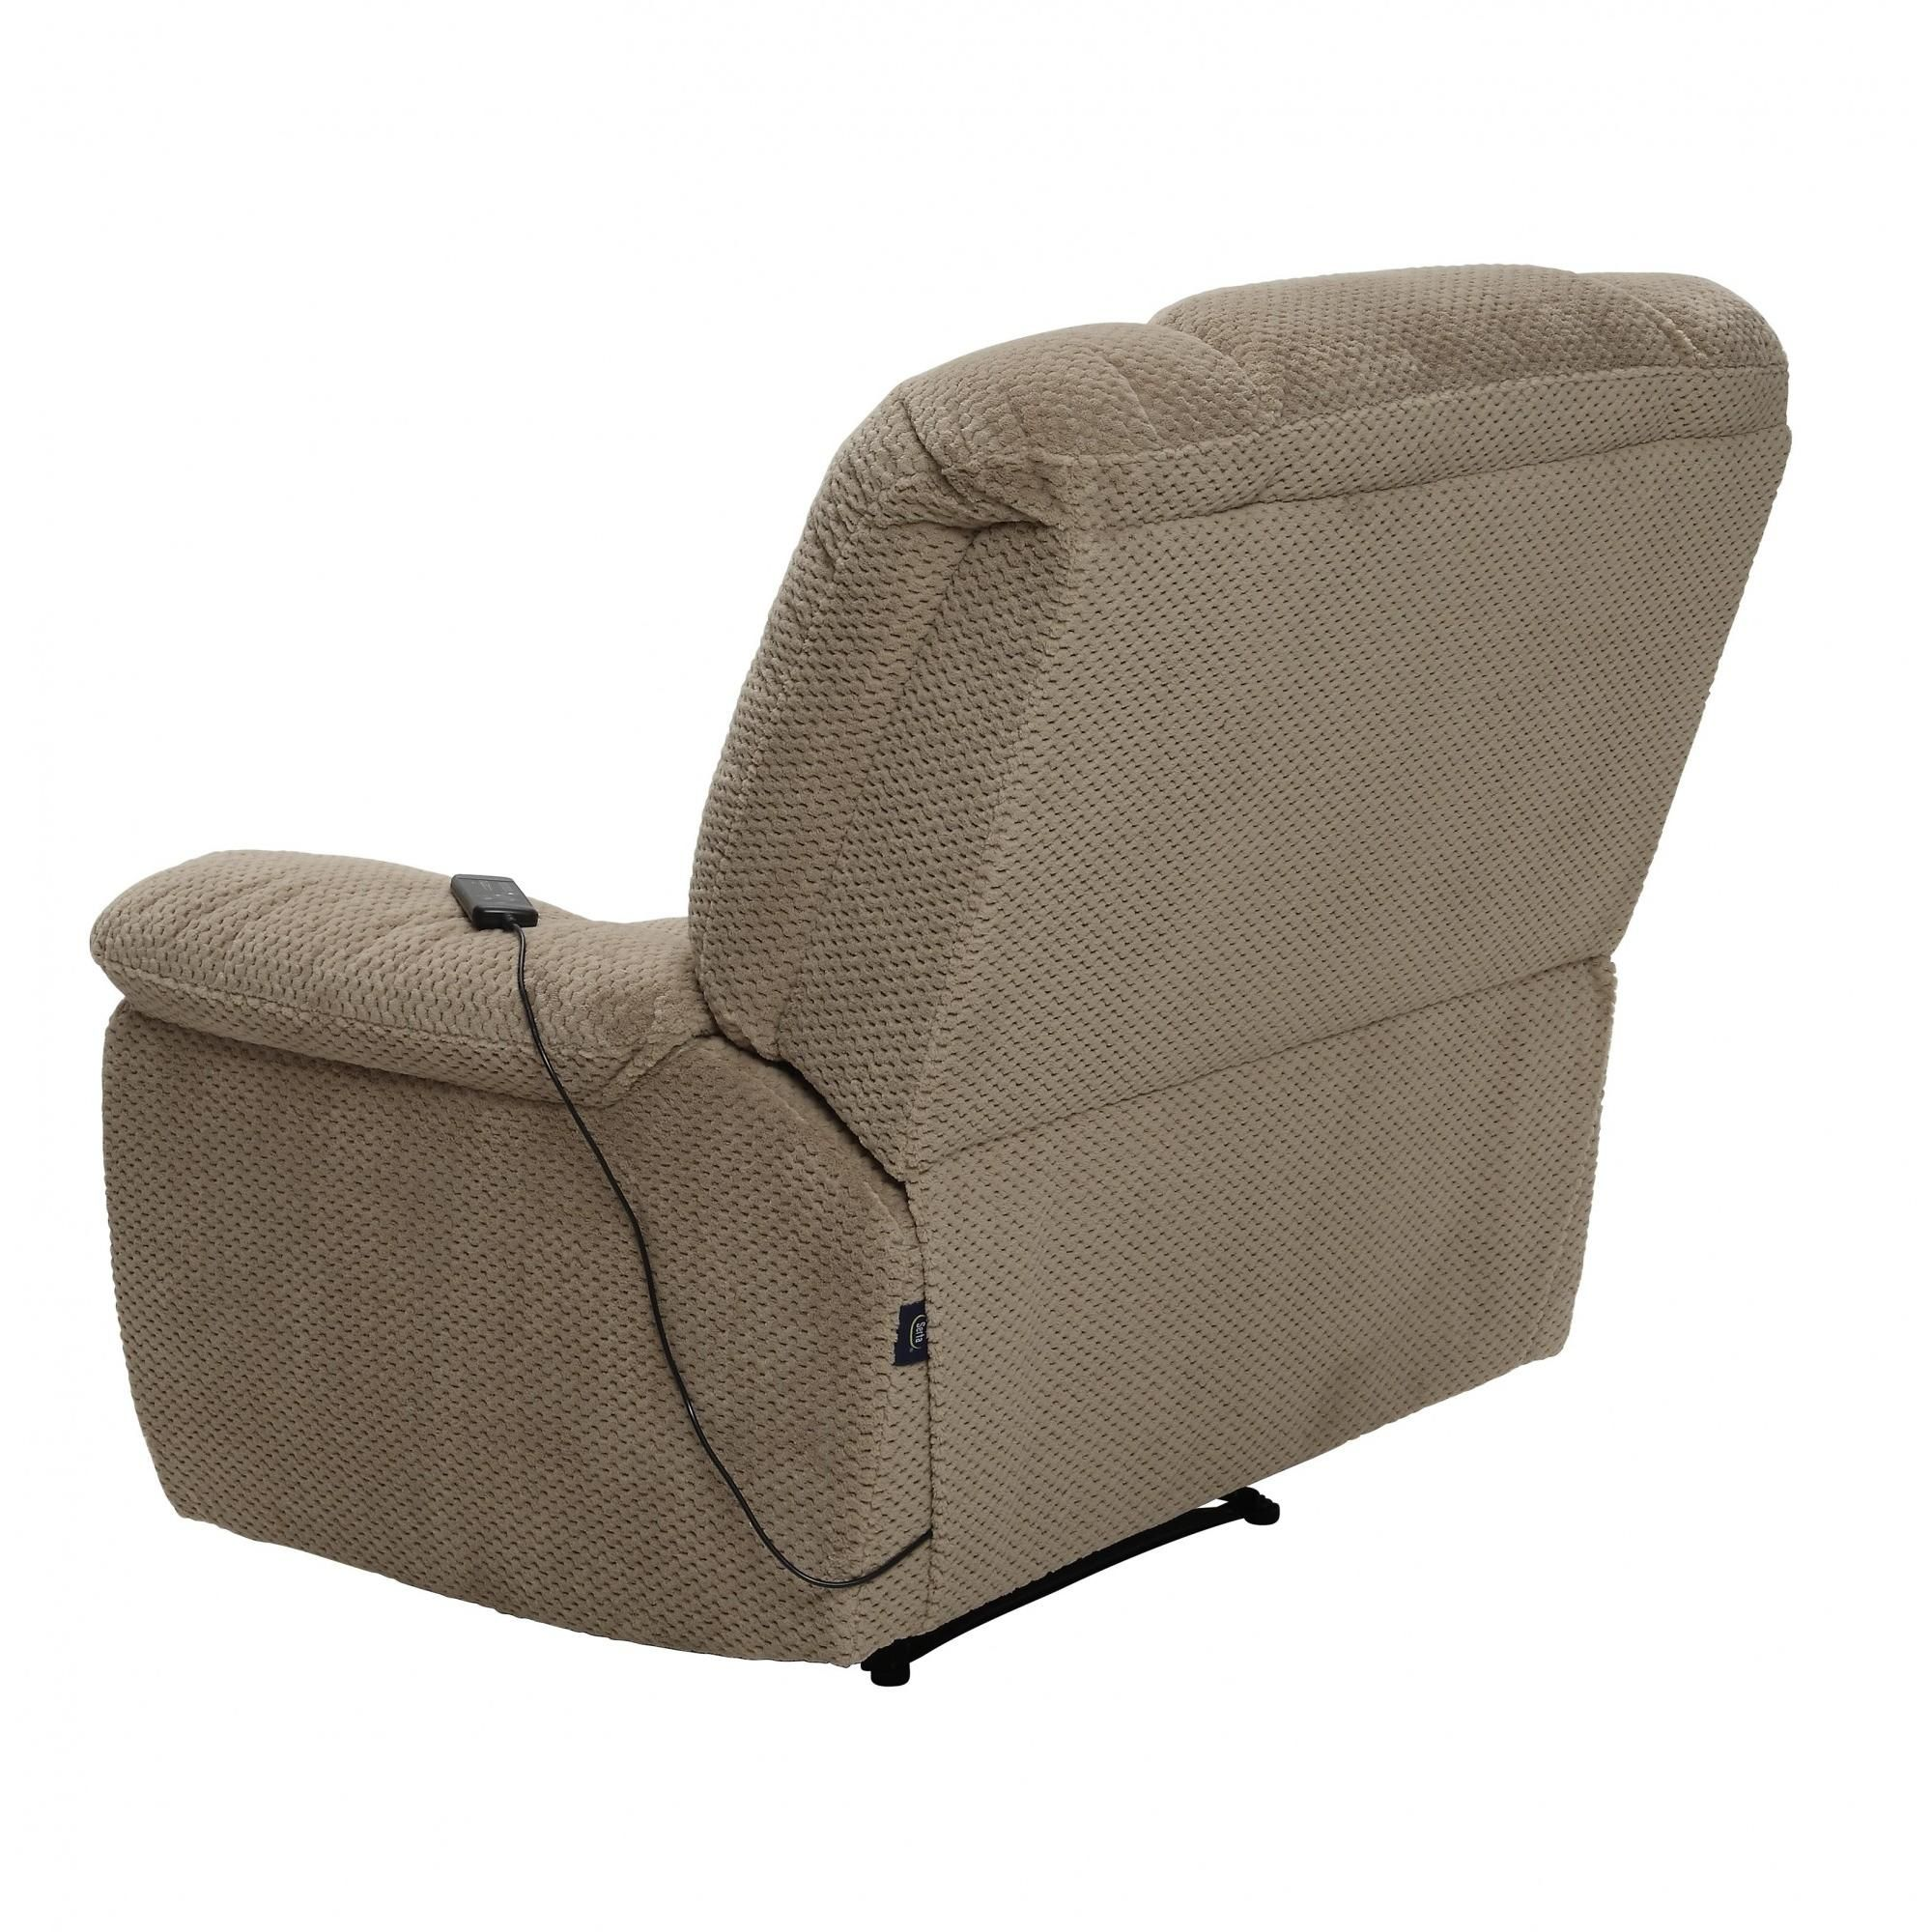 Serta Big With Images High Fashion Home Serta Recliner